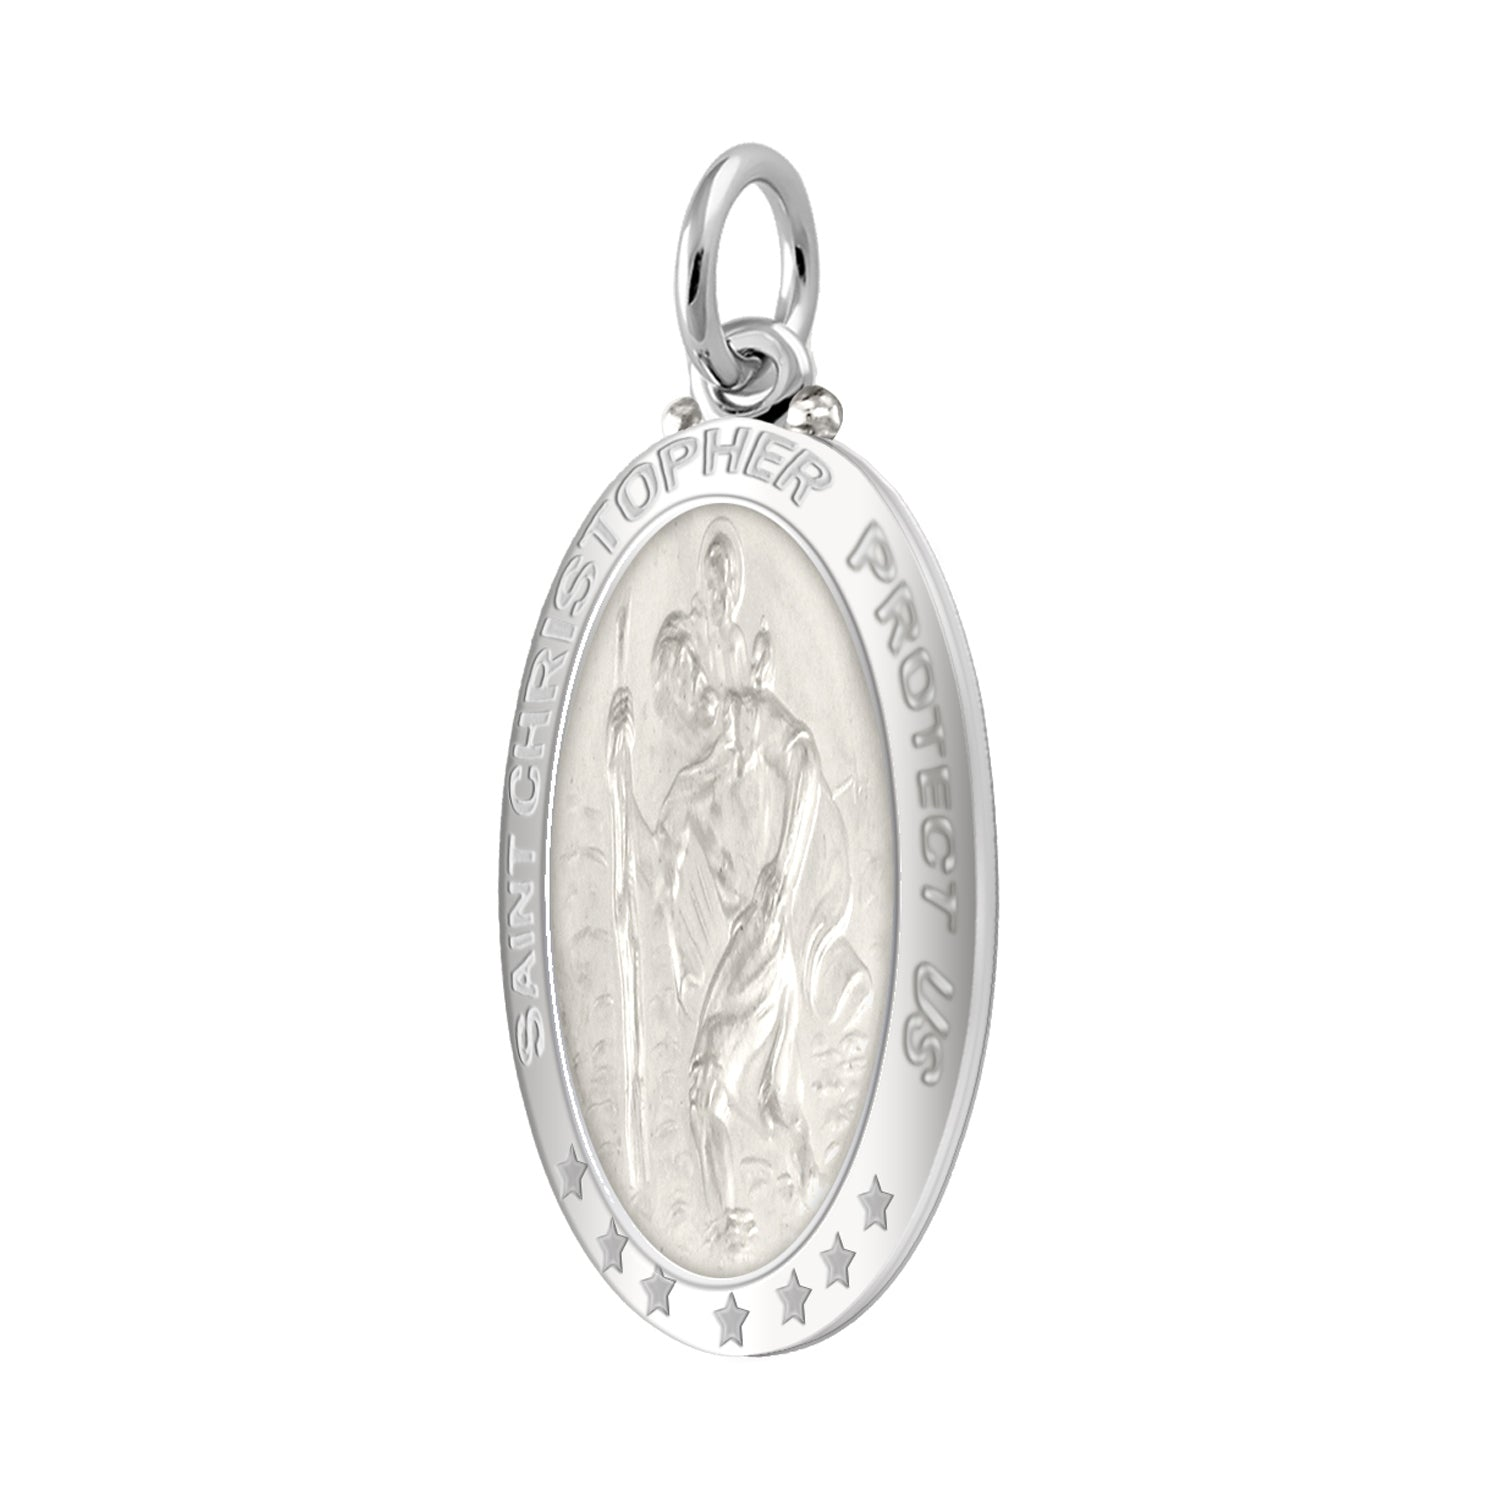 St Christopher Necklace In 925 Purity - Pendant Only